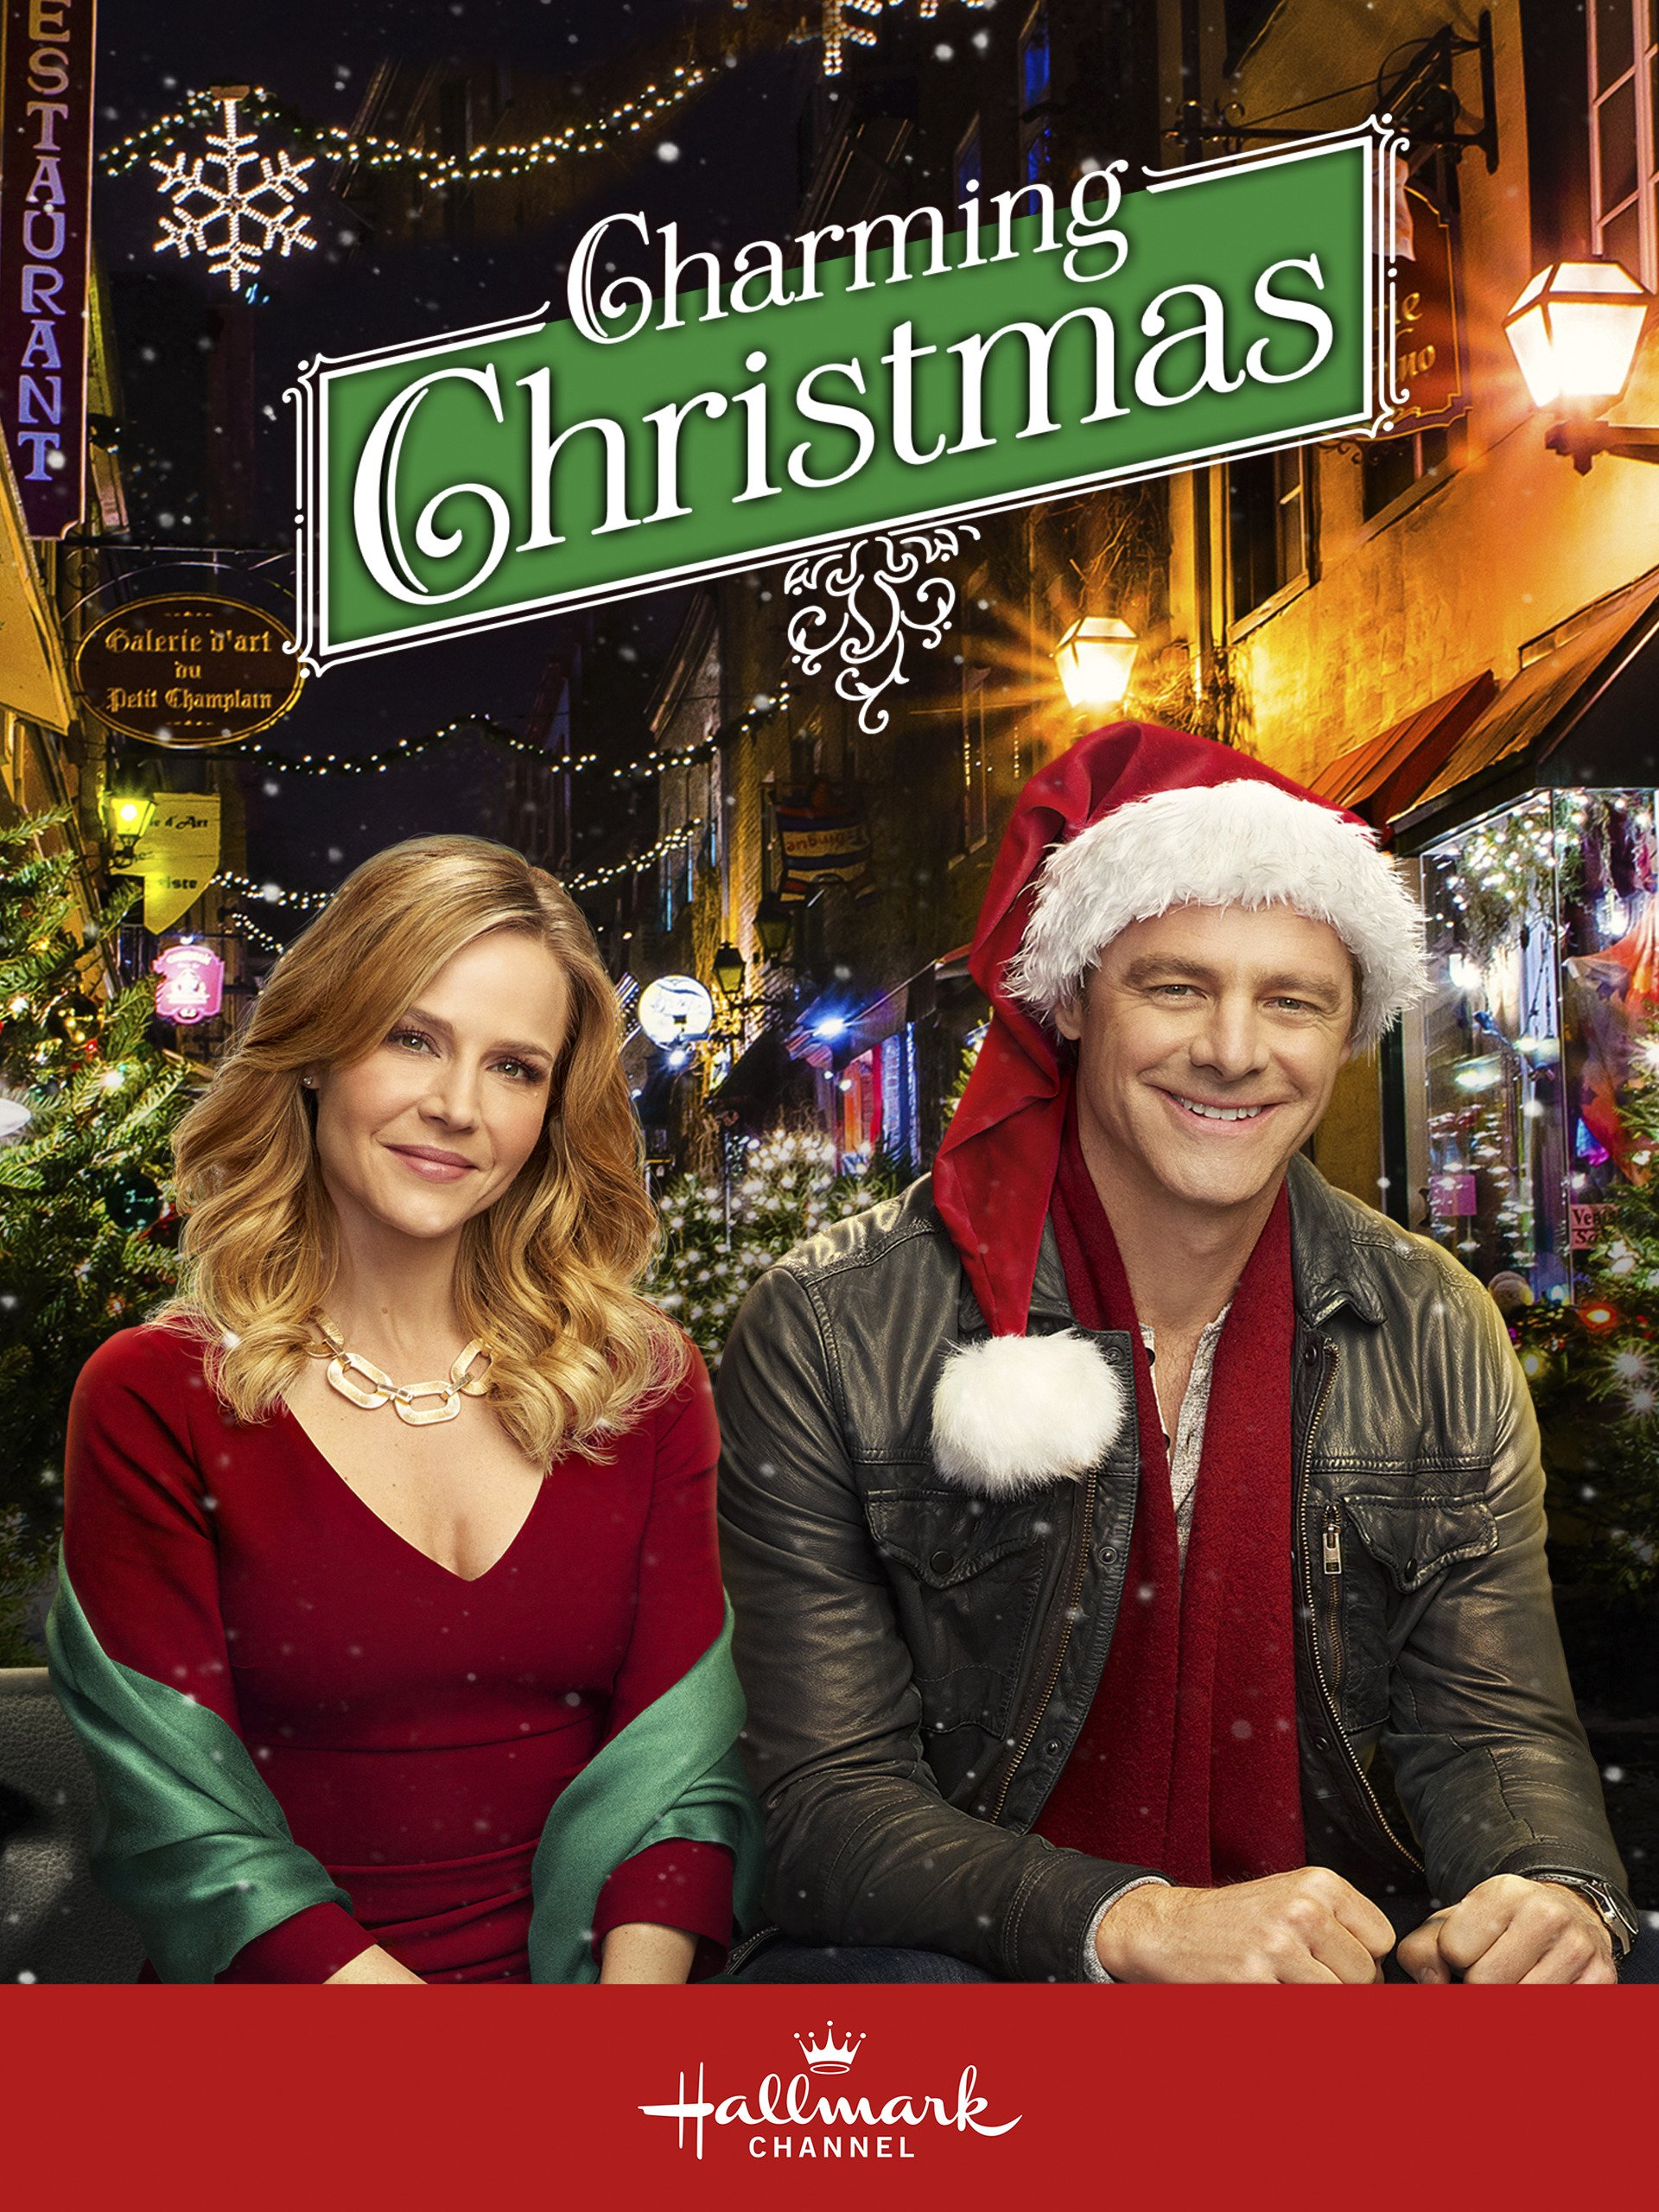 Amazon.com: Charming Christmas: Julie Benz, David Sutcliffe, Craig ...